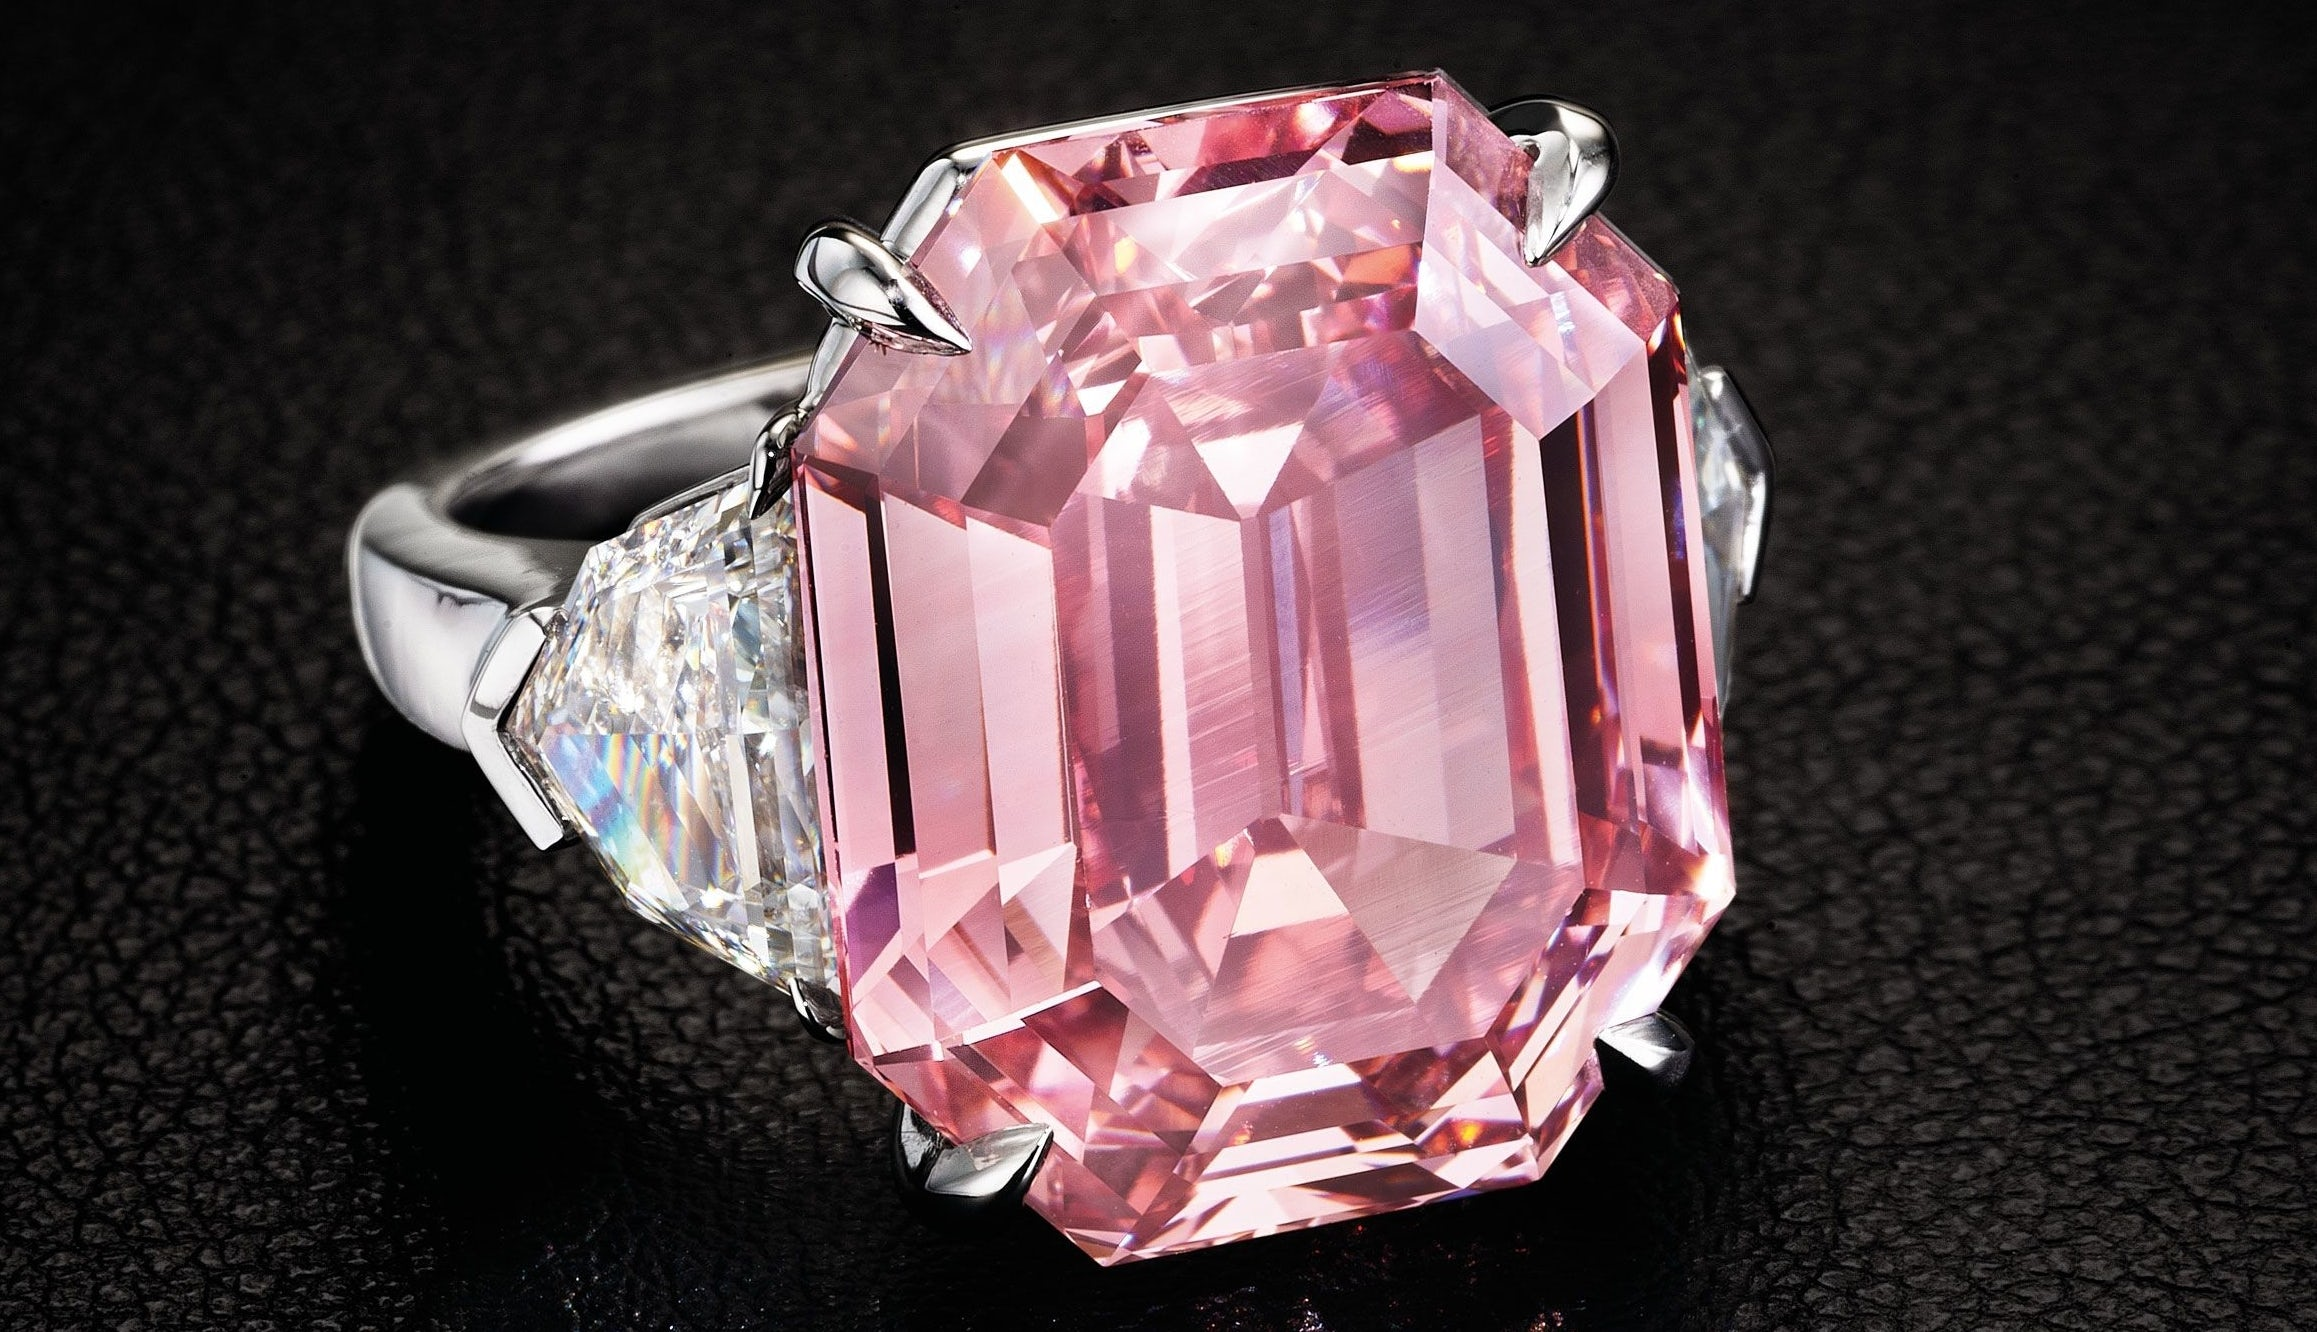 Pink Legacy Diamond | Source: Sotheby's